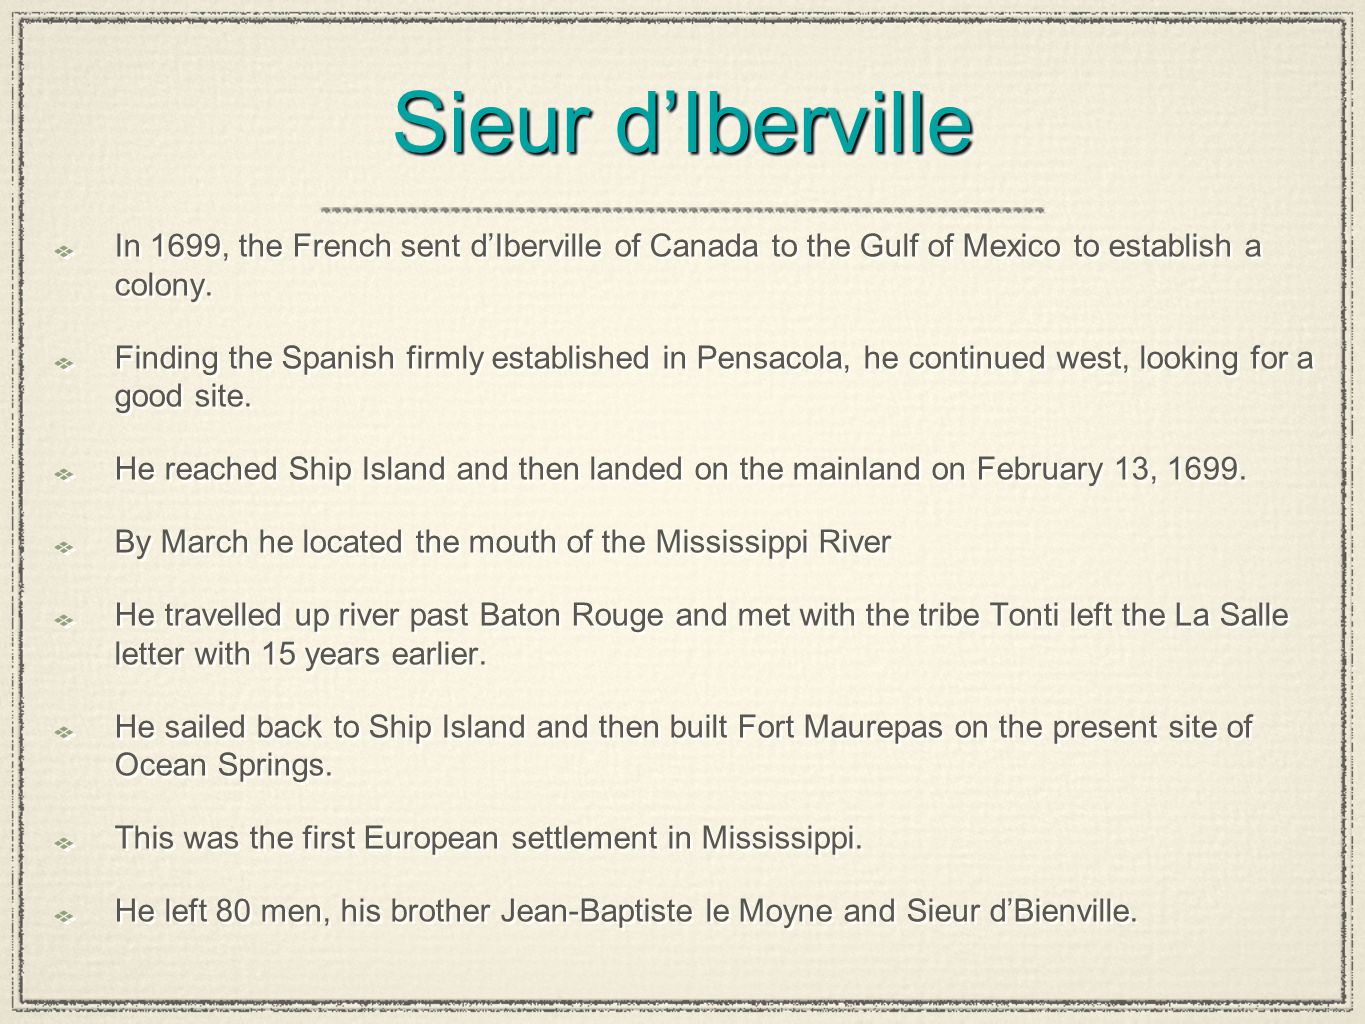 Sieur d'Iberville In 1699, the French sent d'Iberville of Canada to the Gulf of Mexico to establish a colony.